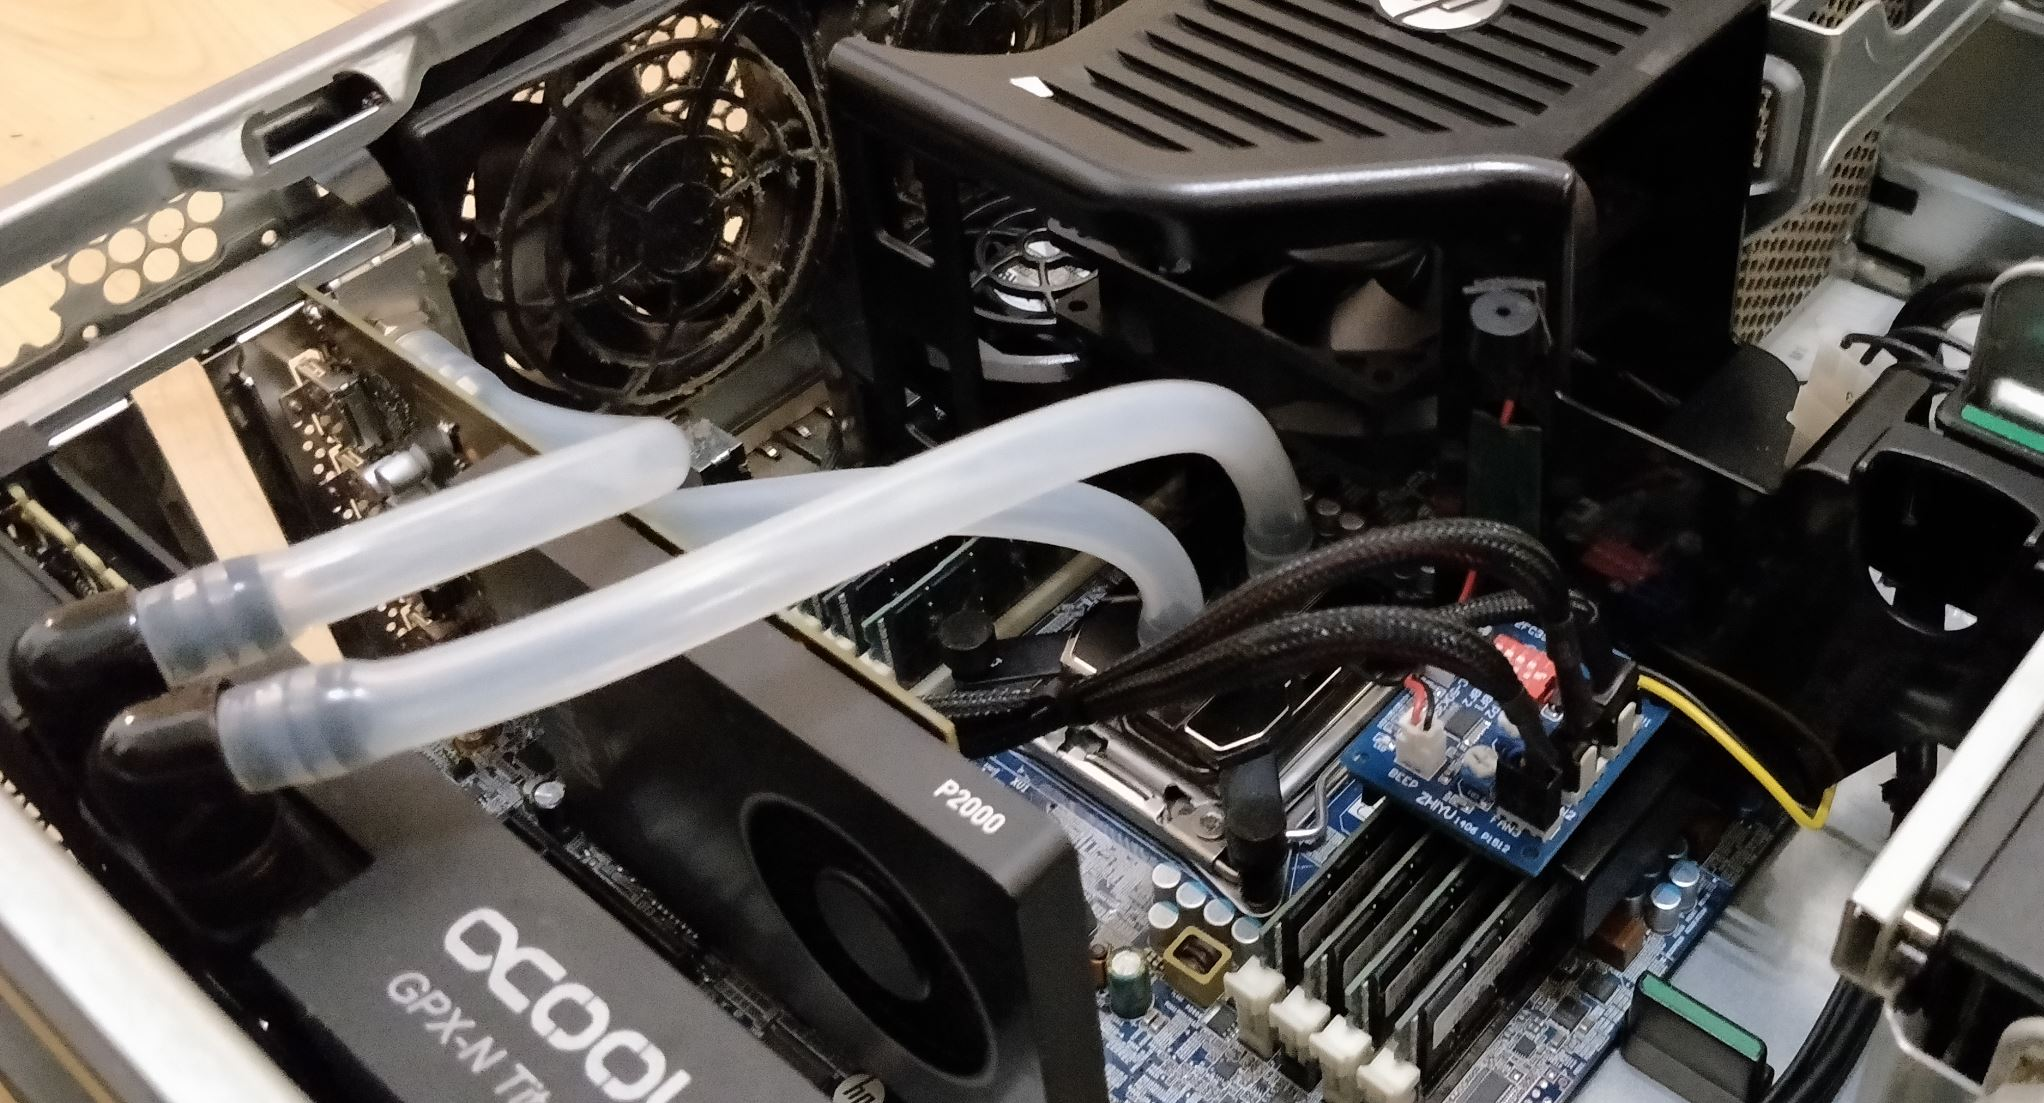 3rd Party Liquid Cooling Mod Z620 The Javato Method Hp Support Community 6955466